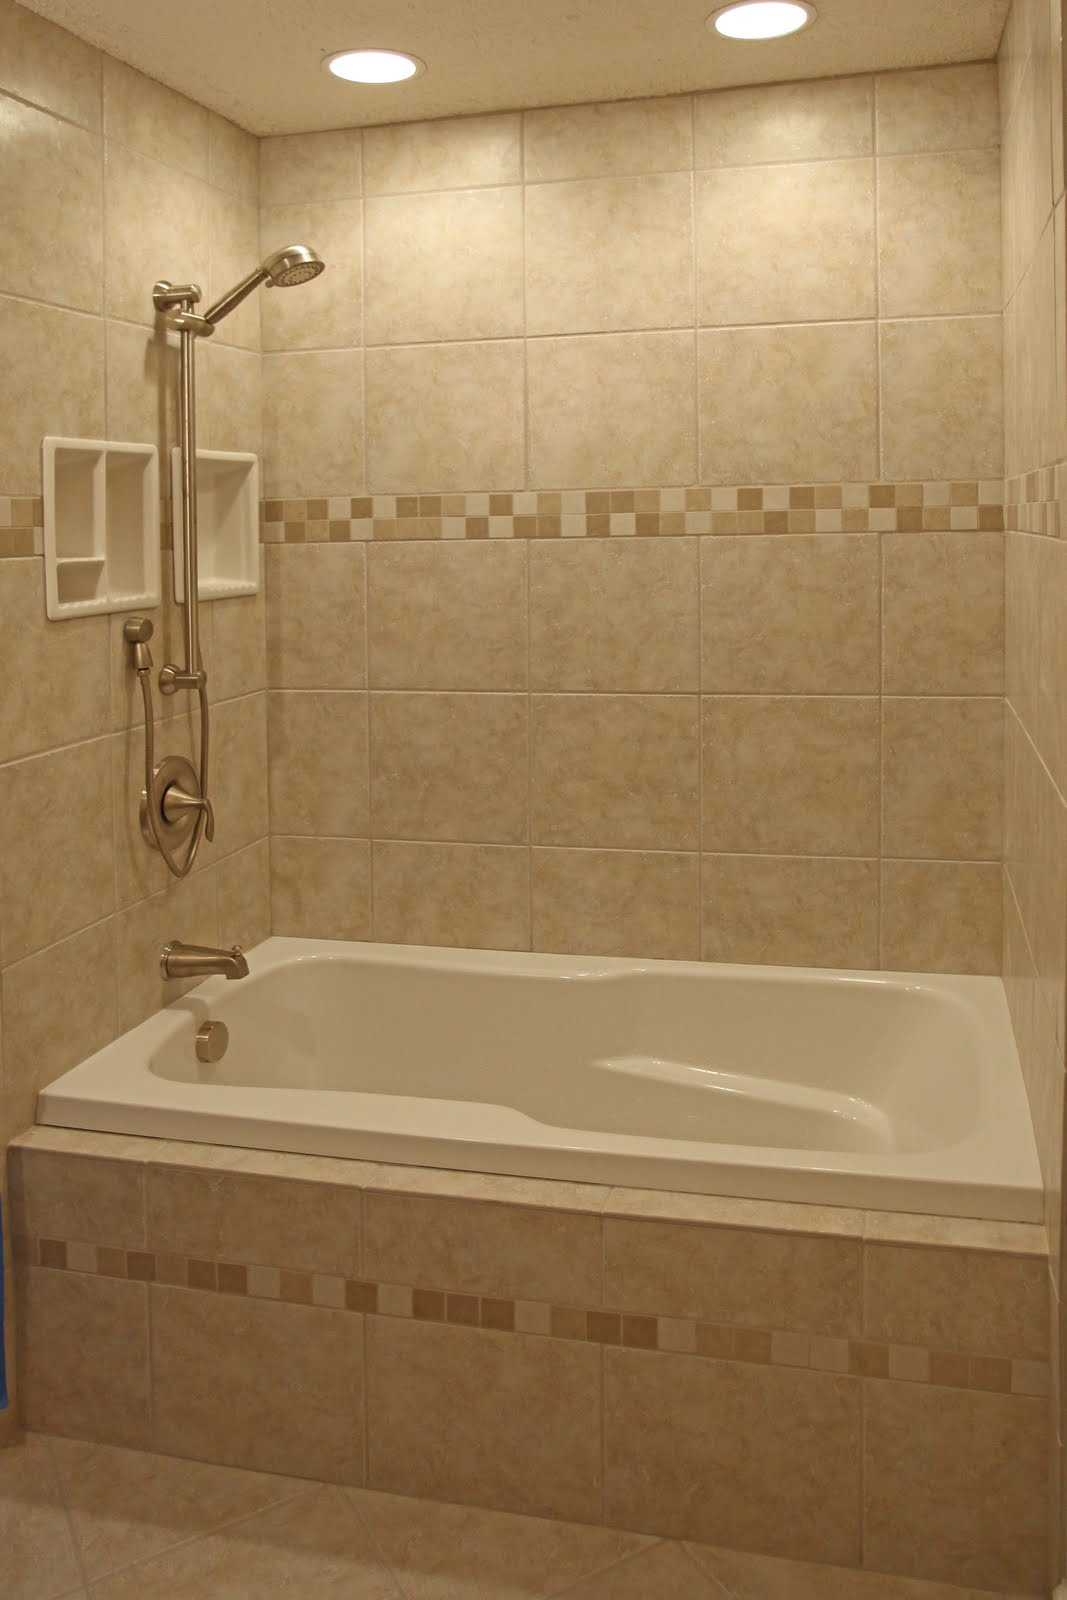 Bathroom Tiled Shower Design Ideas ~ Bathroom remodeling design ideas tile shower niches